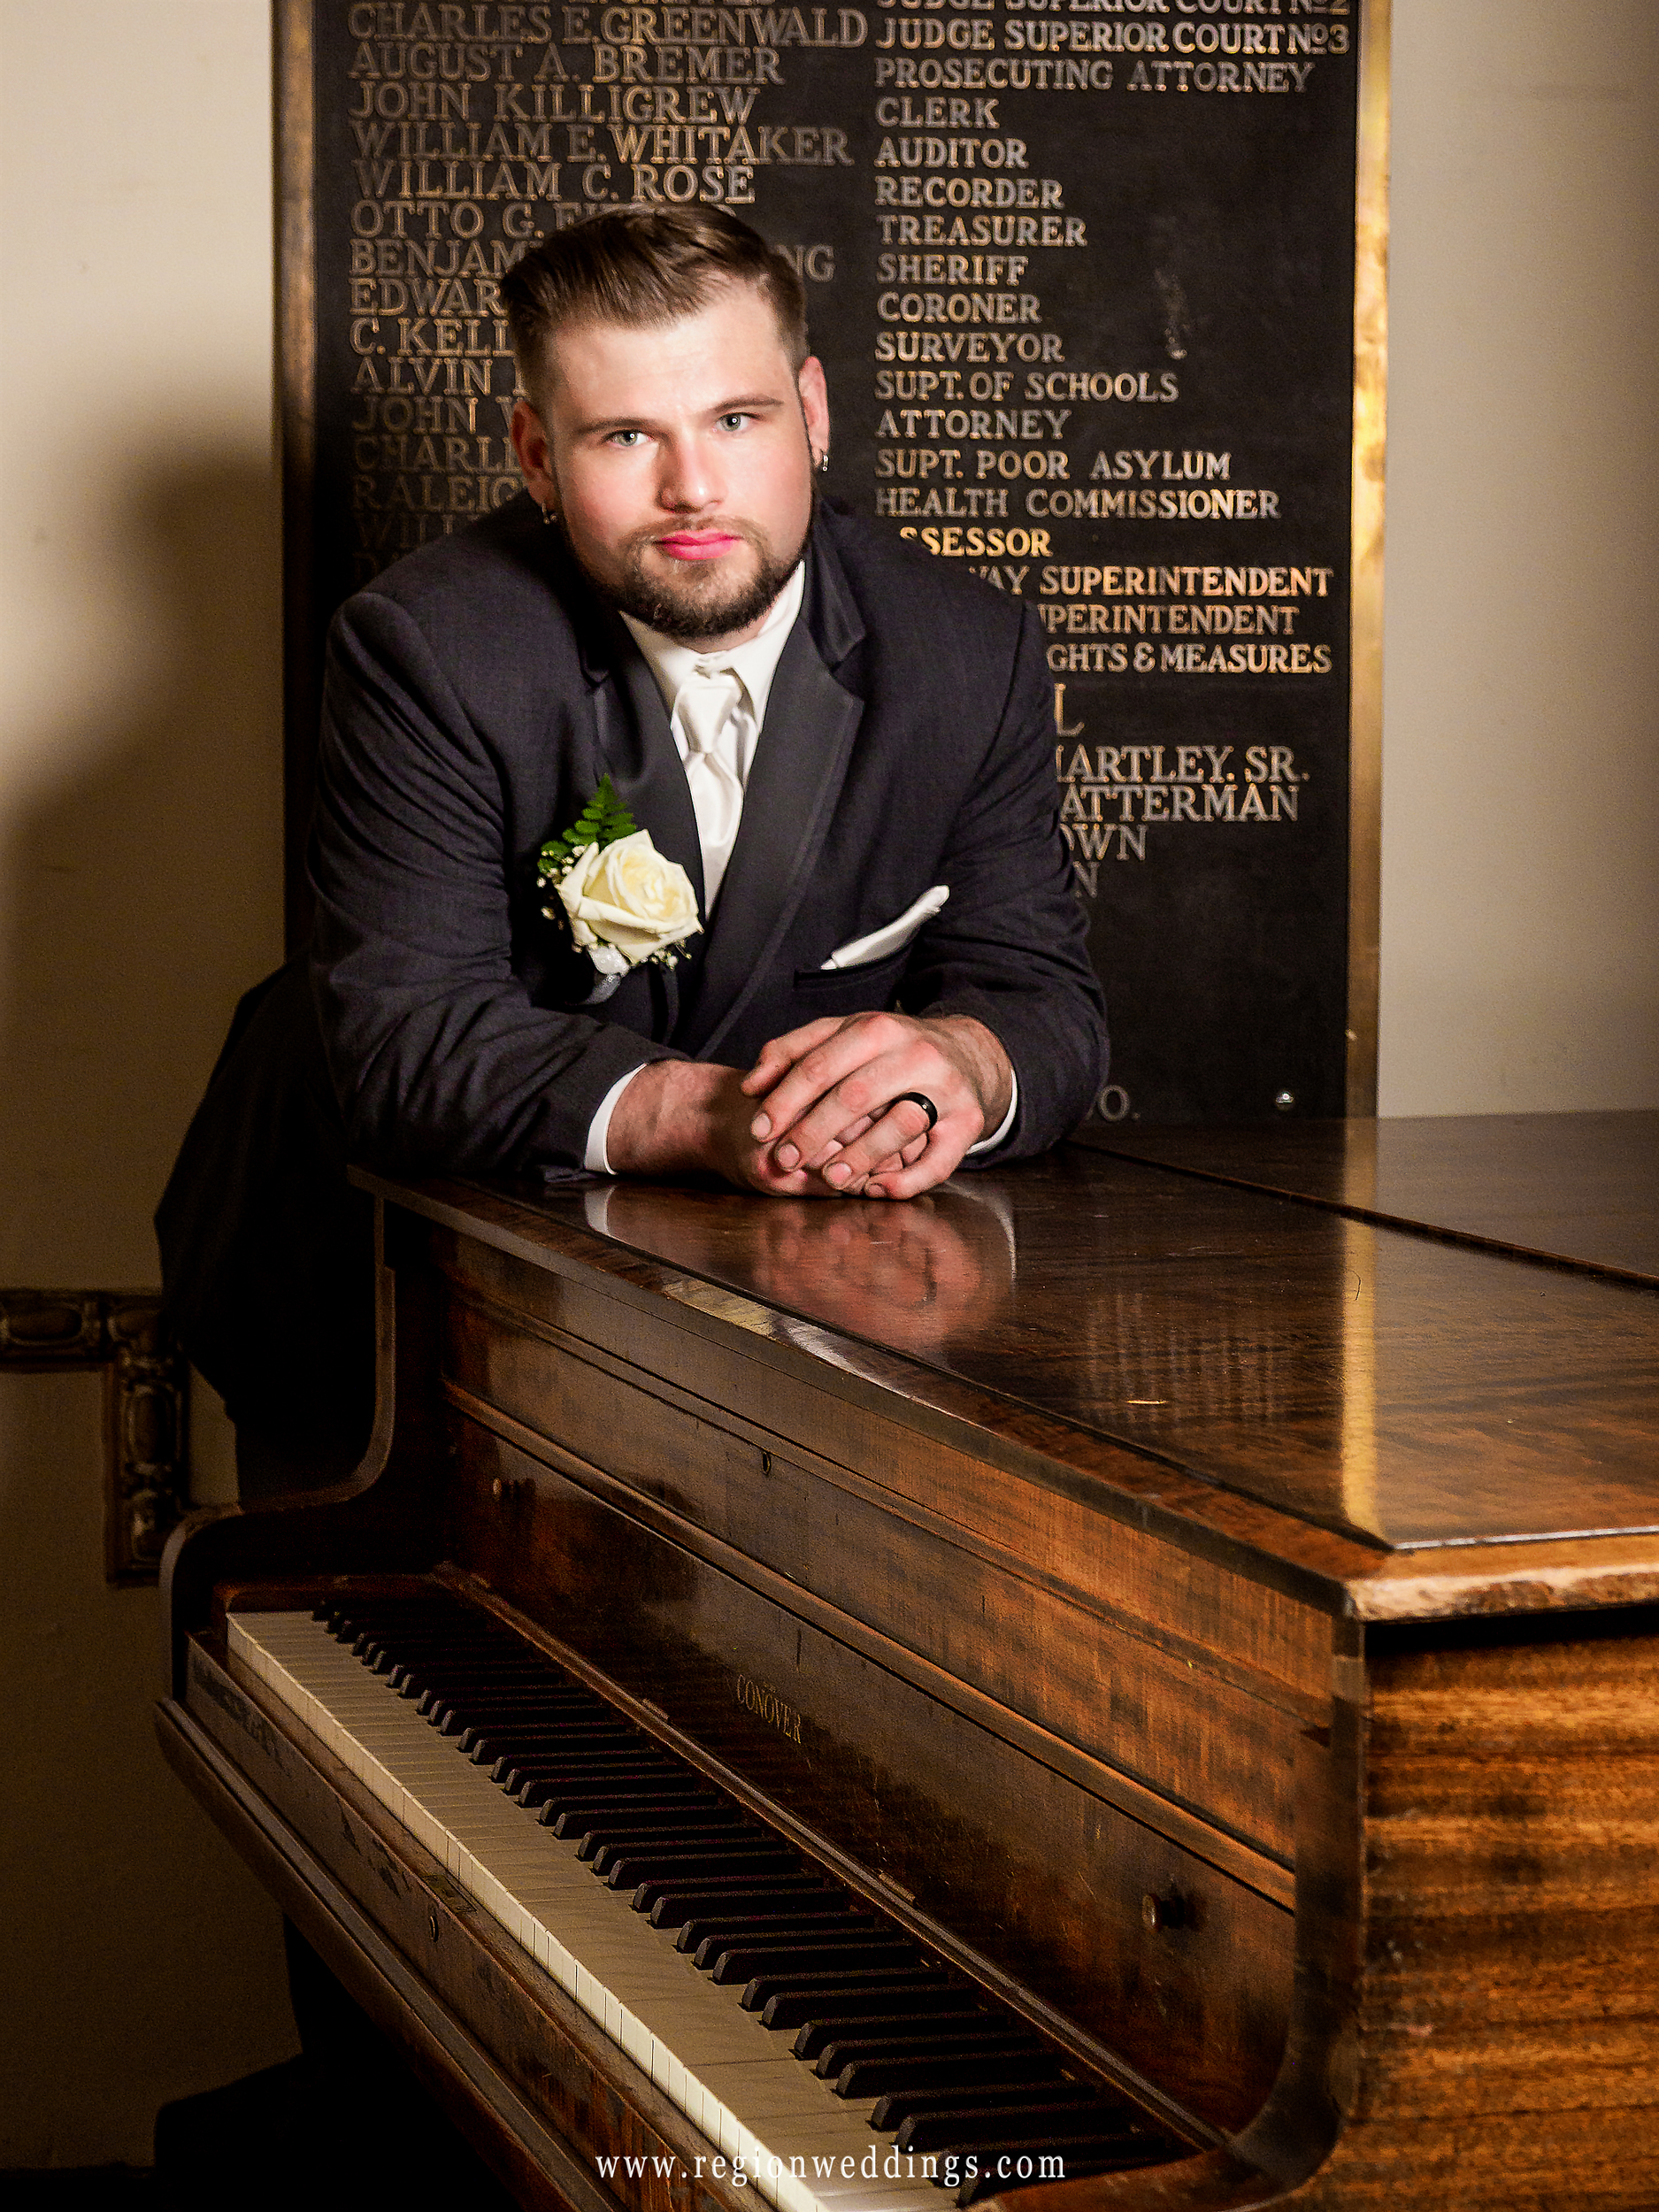 The groom relaxes next to the vintage piano at The Halls of Justice.